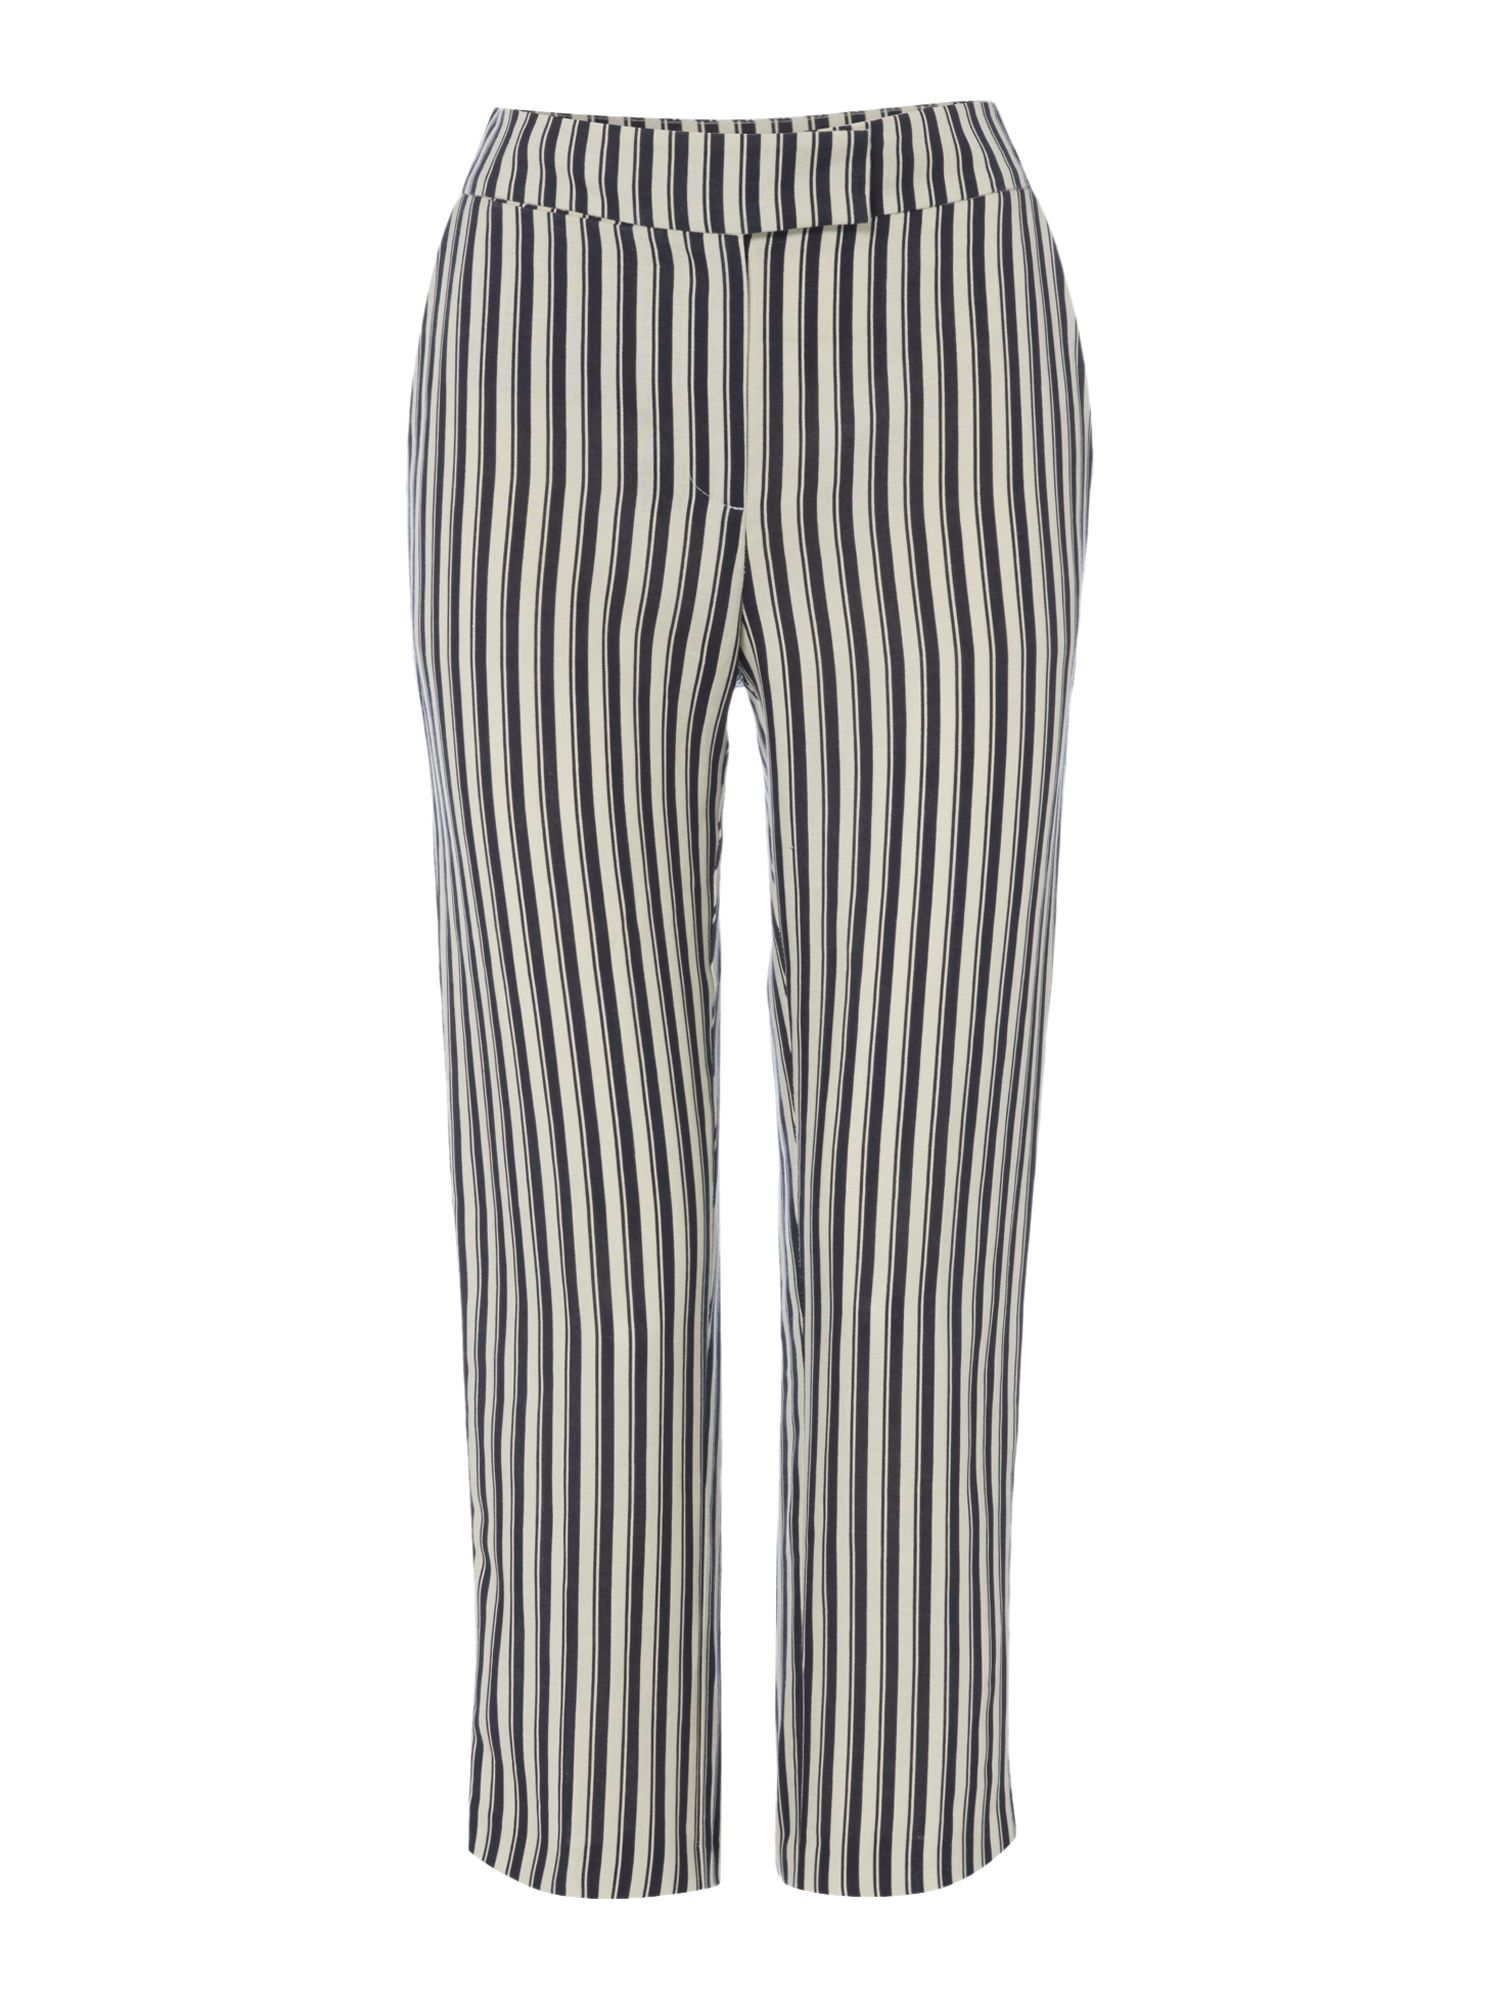 Linea Bela linen crop trouser, Blue Stripe